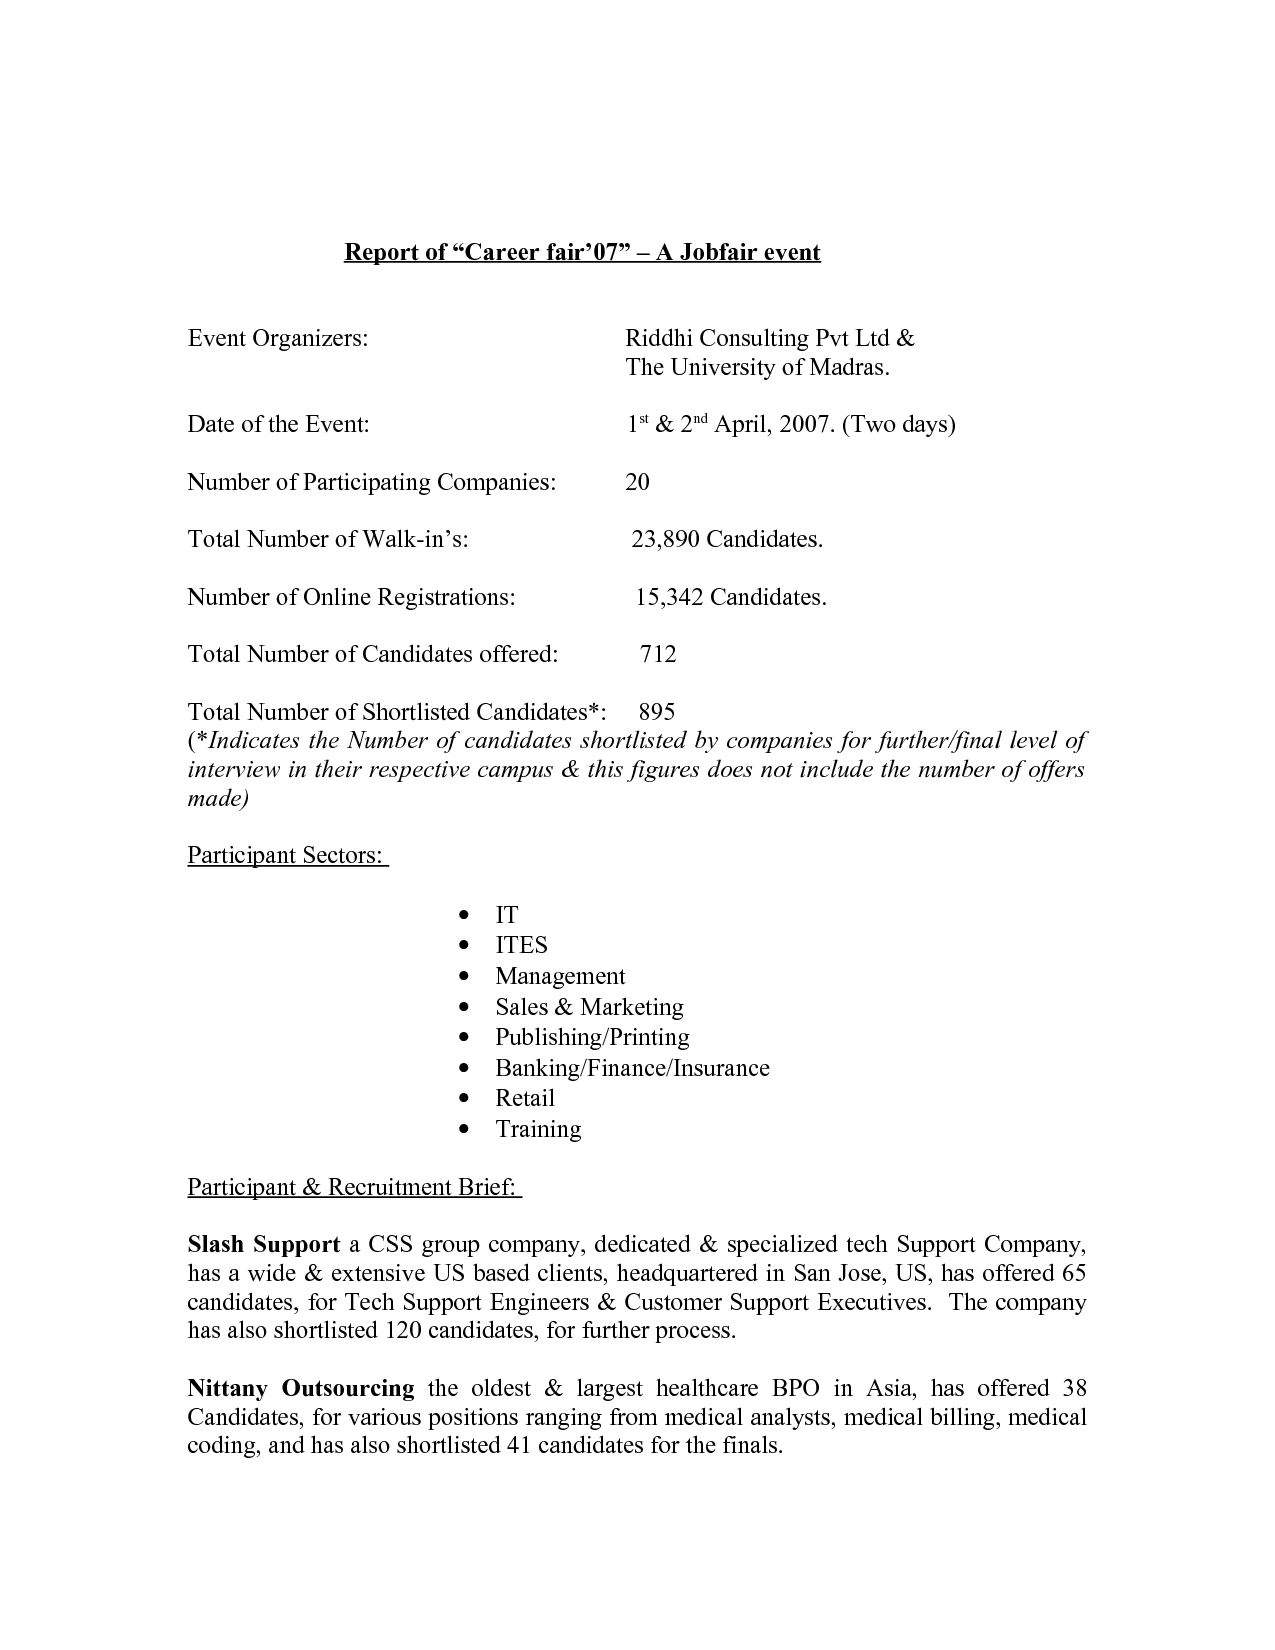 Resume Format For Job Fresher Pdf Huroncountychamber Com